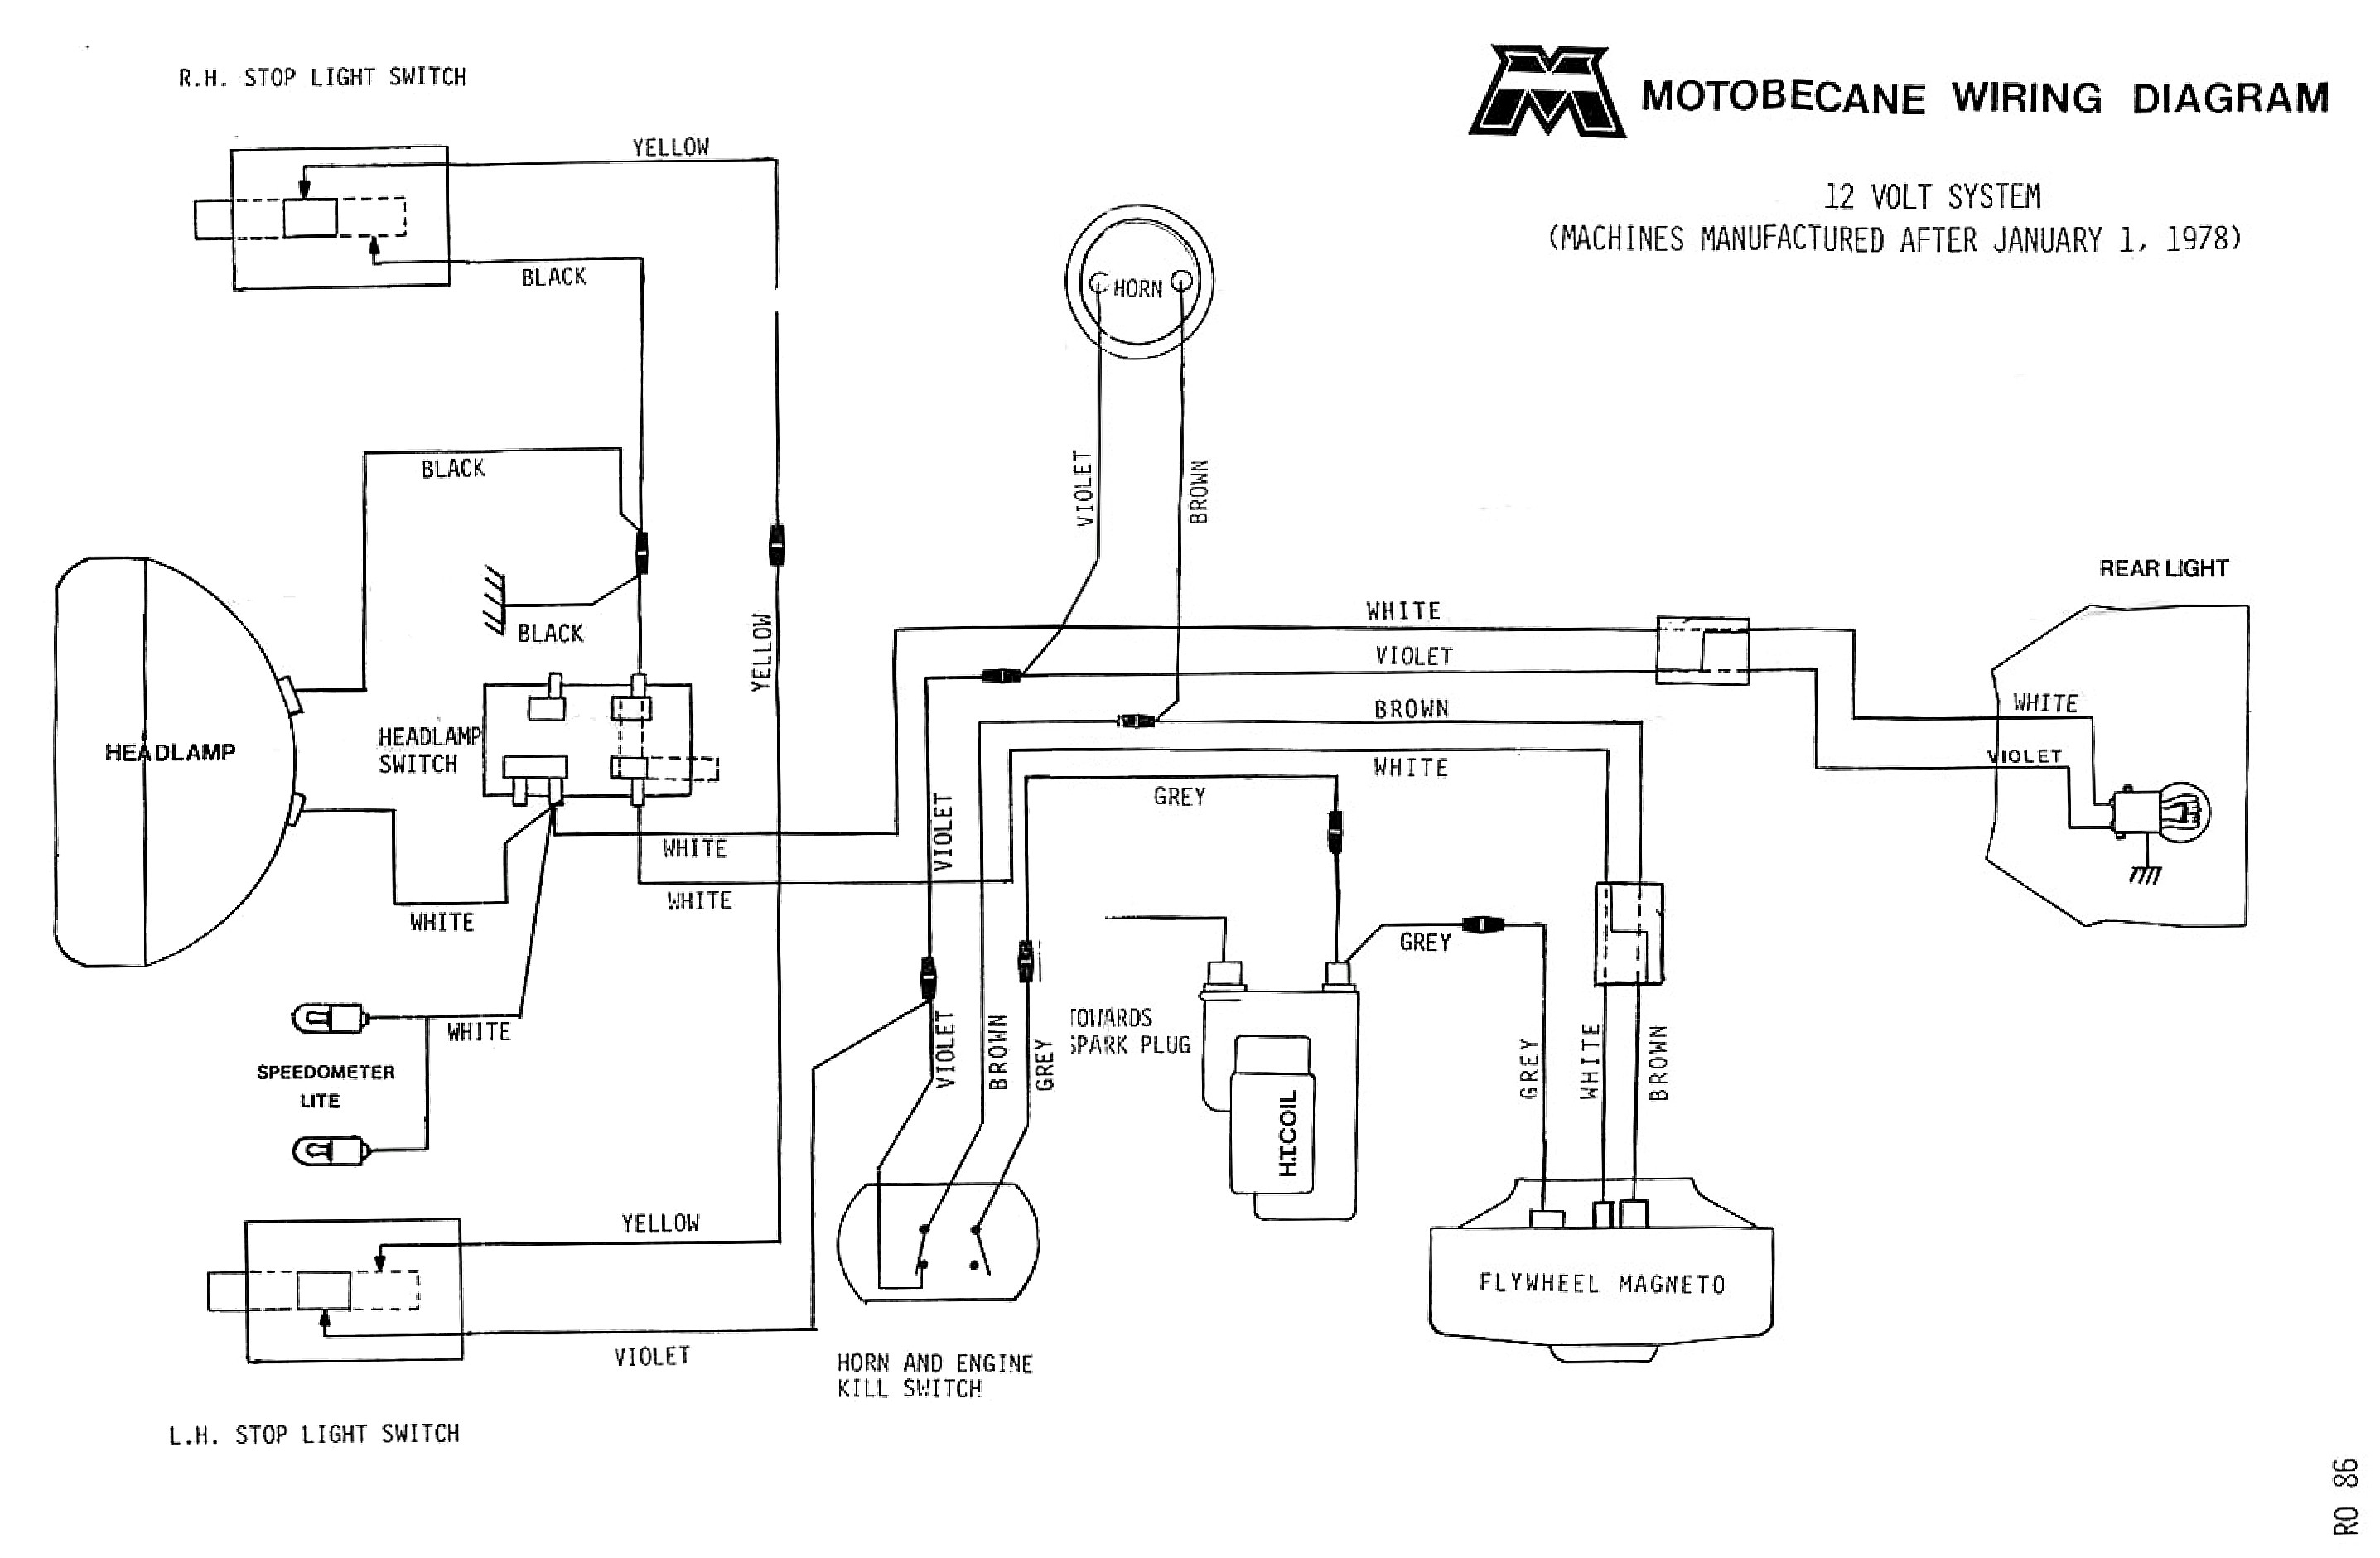 Ford 8N Electrical Diagram | Manual E-Books - Ford 8N Wiring Diagram